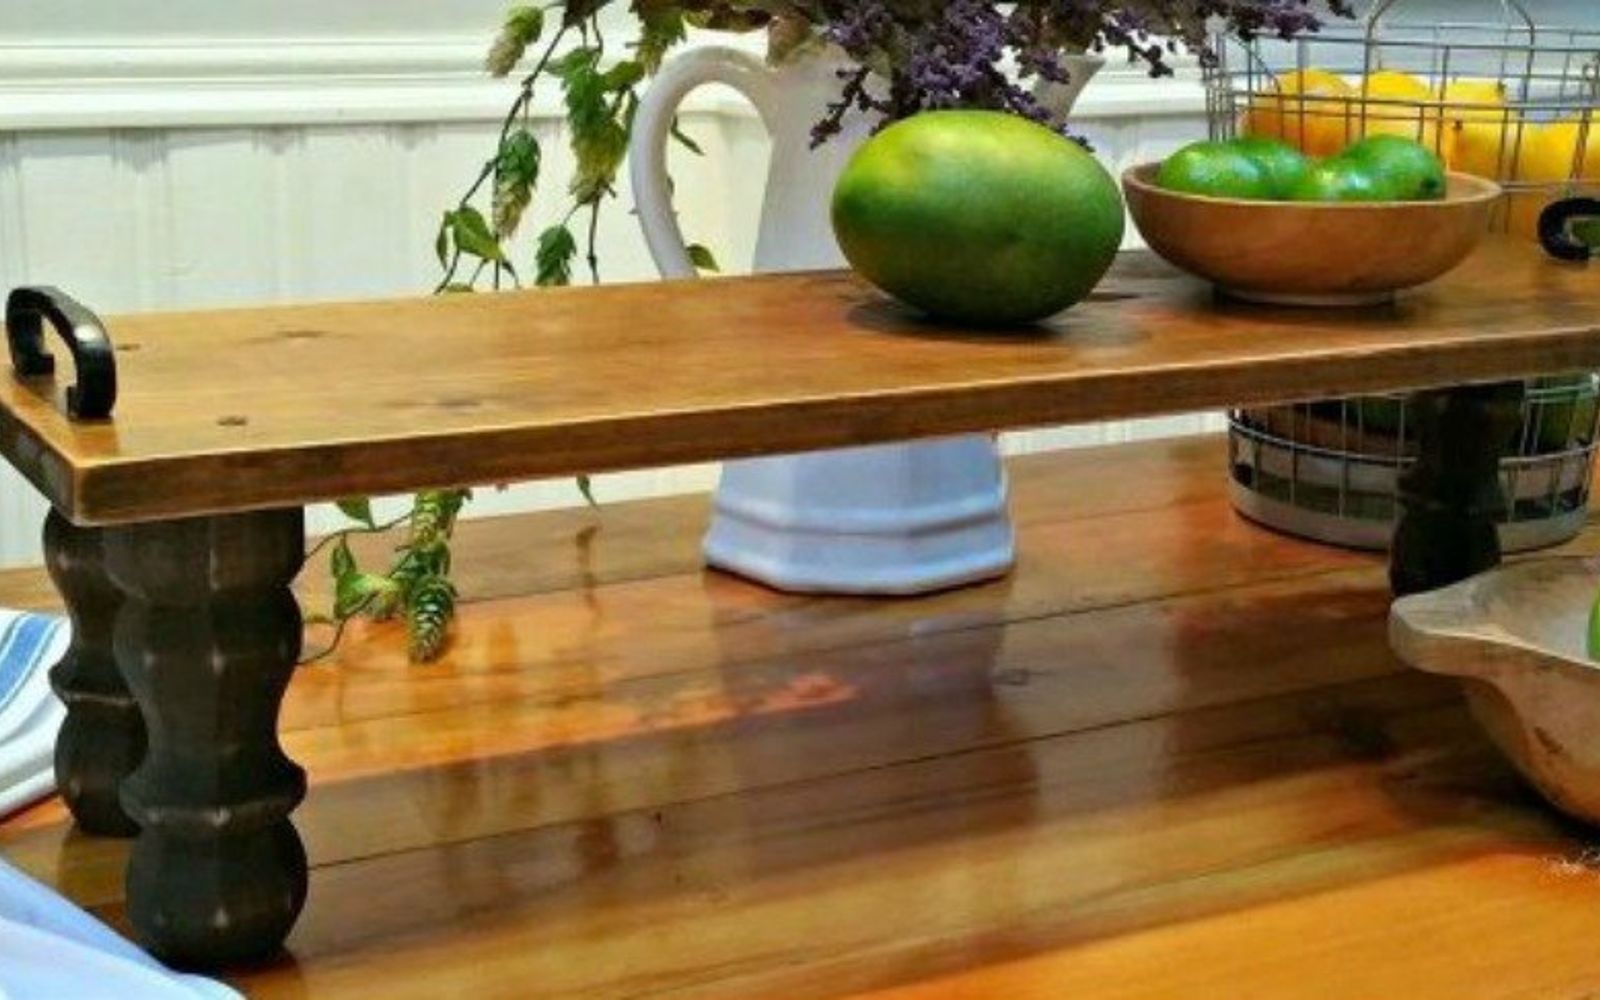 s decorate your living room for under 10 with these 15 ideas, Create a farmhouse tray from reclaimed wood